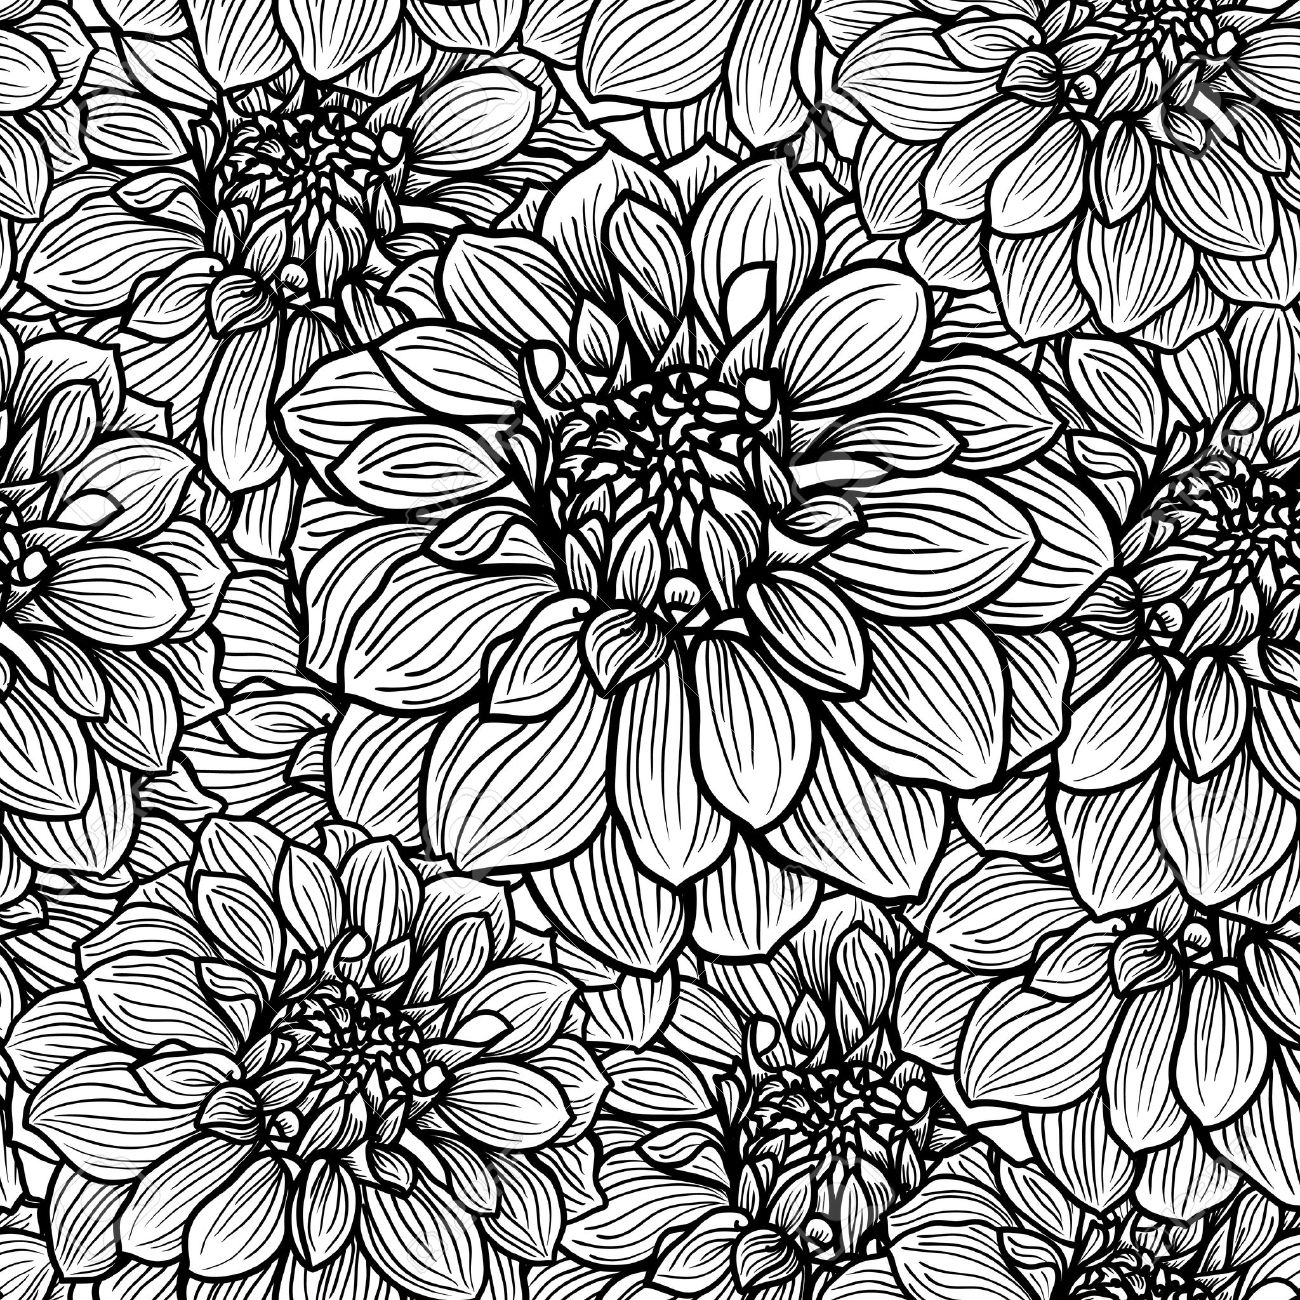 Background Designs Drawing At Getdrawings Free Download